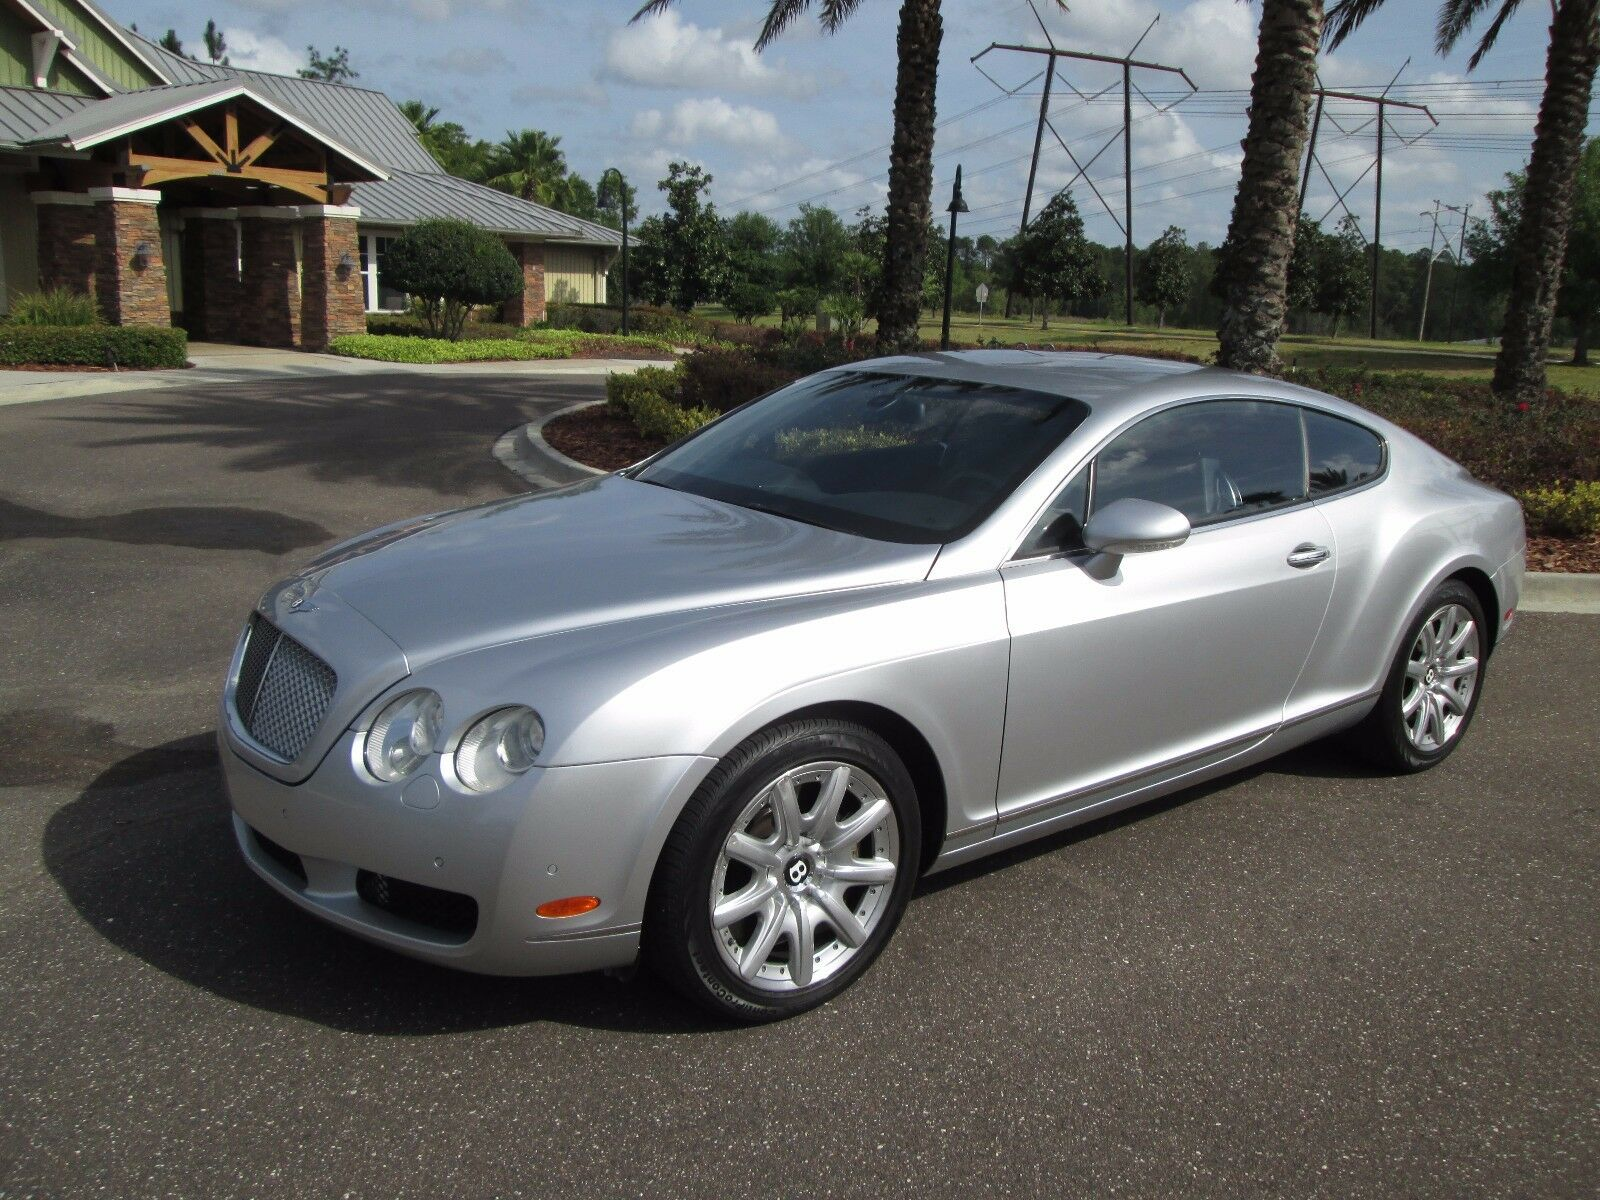 2005 Bentley Continental GT  2005 Bentley Continental Gt Coupe Only 48 k miles 1 owner palm beach car